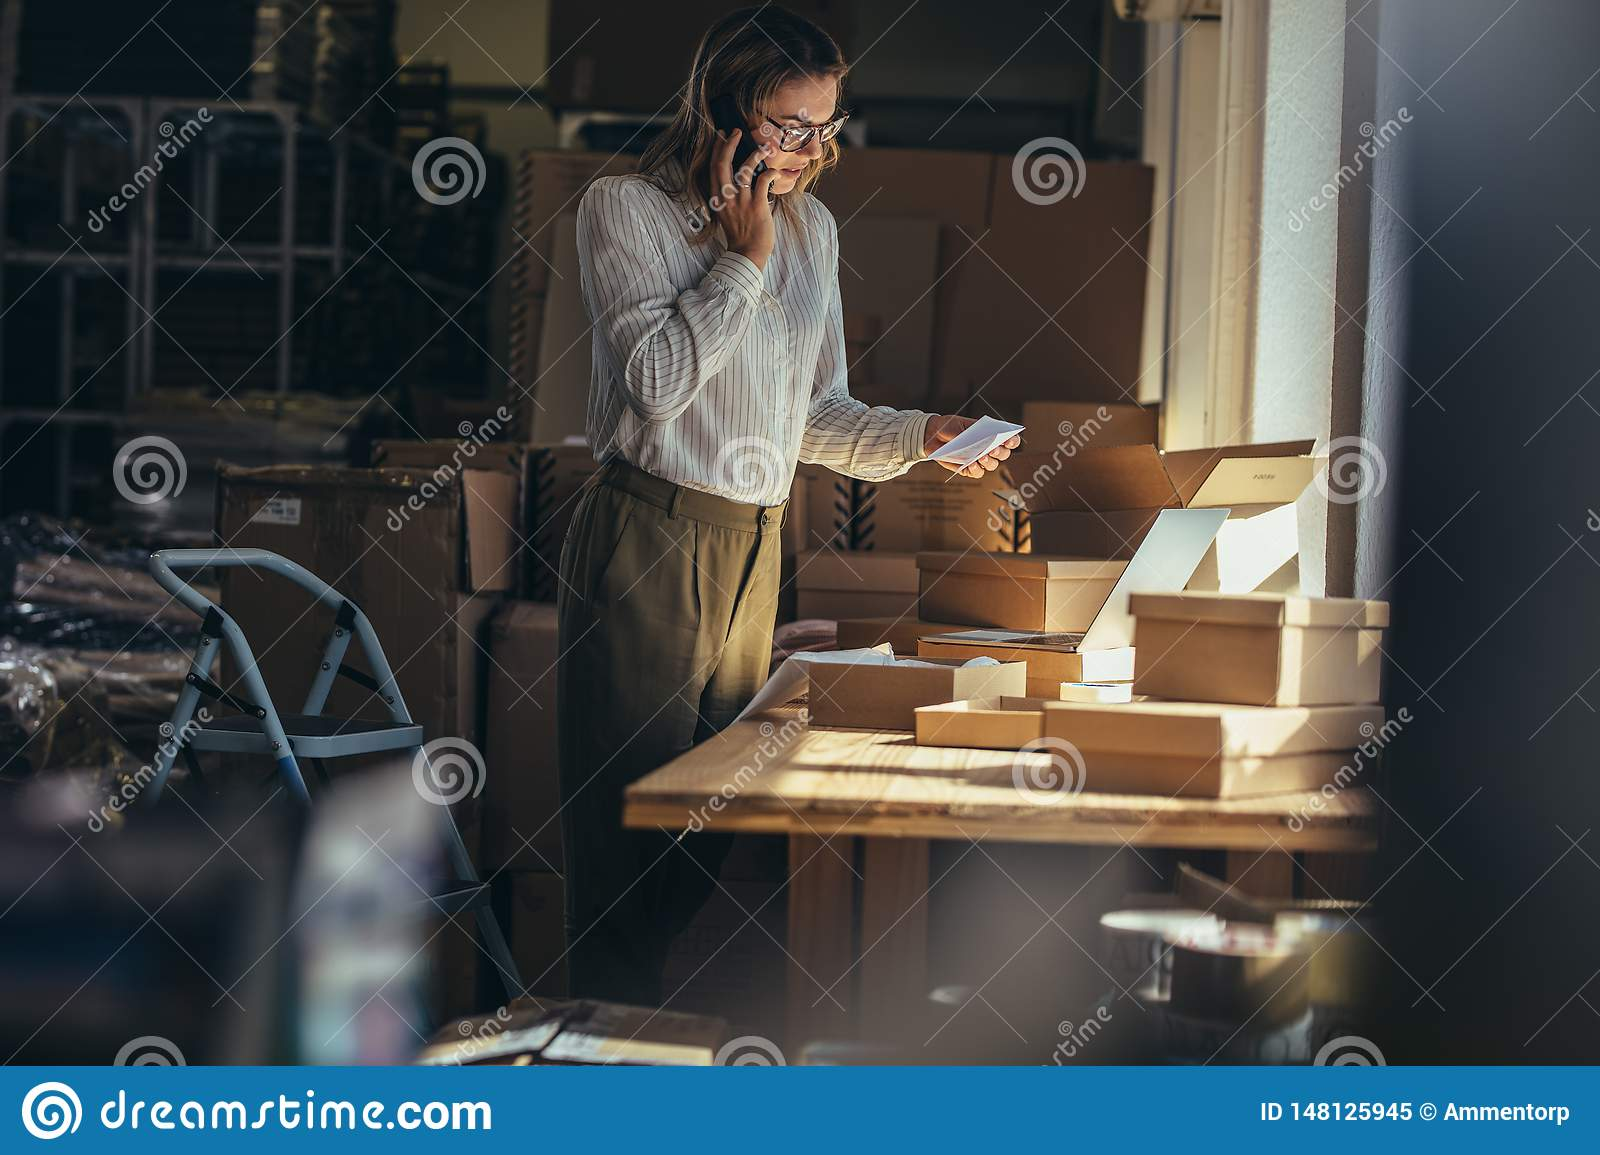 Woman confirming the order on phone